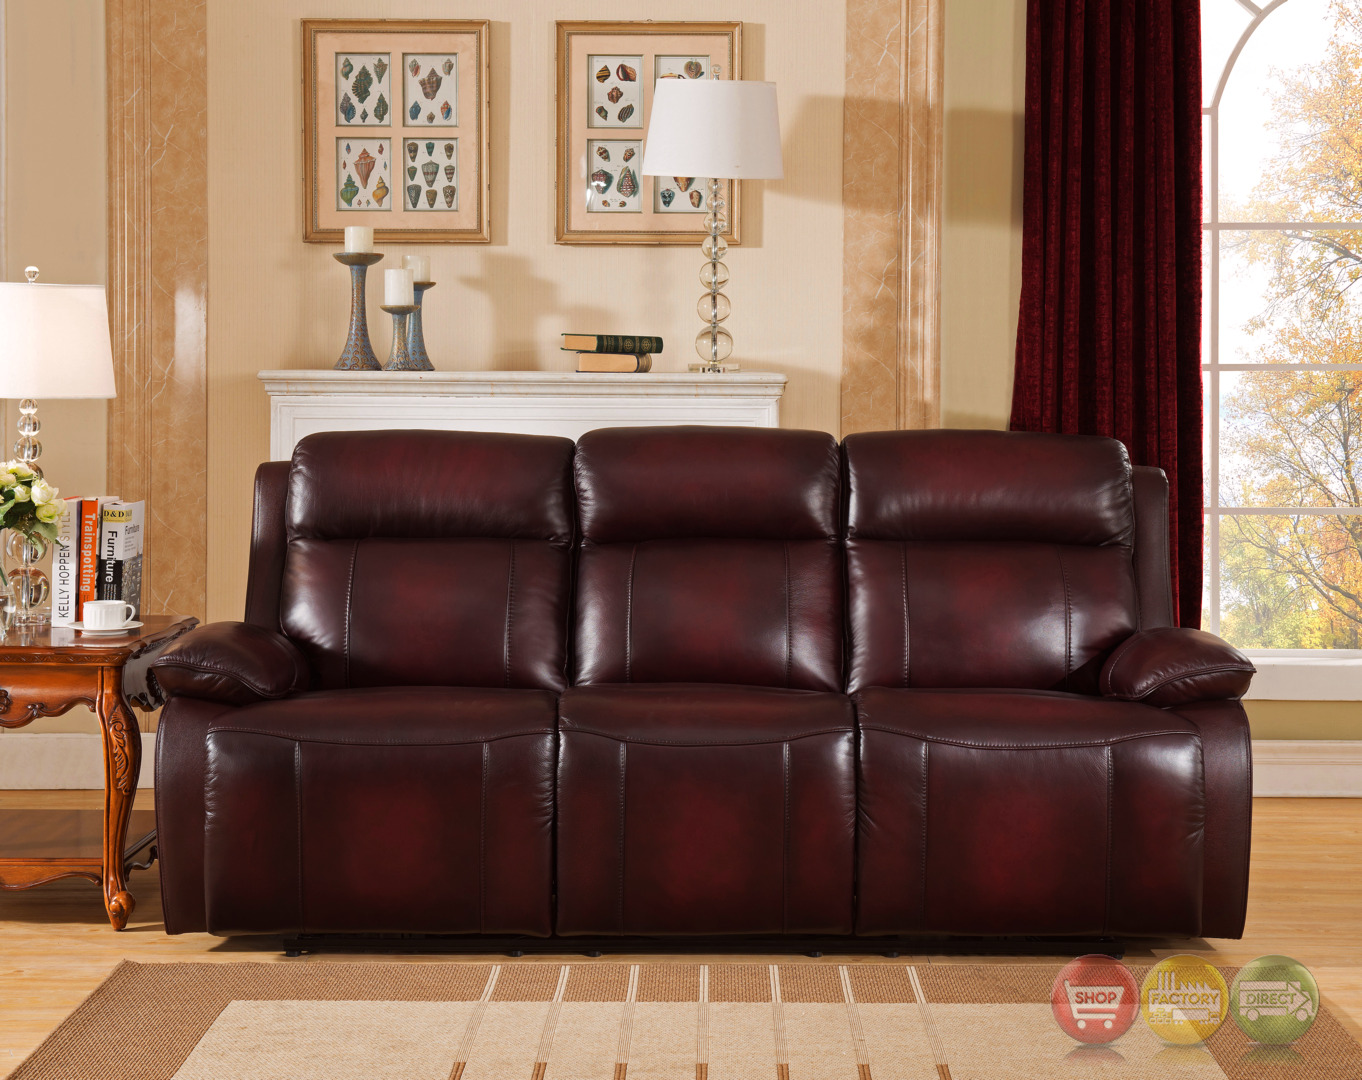 genuine leather sofa sets trays table faraday power recline 3pc set in deep red real